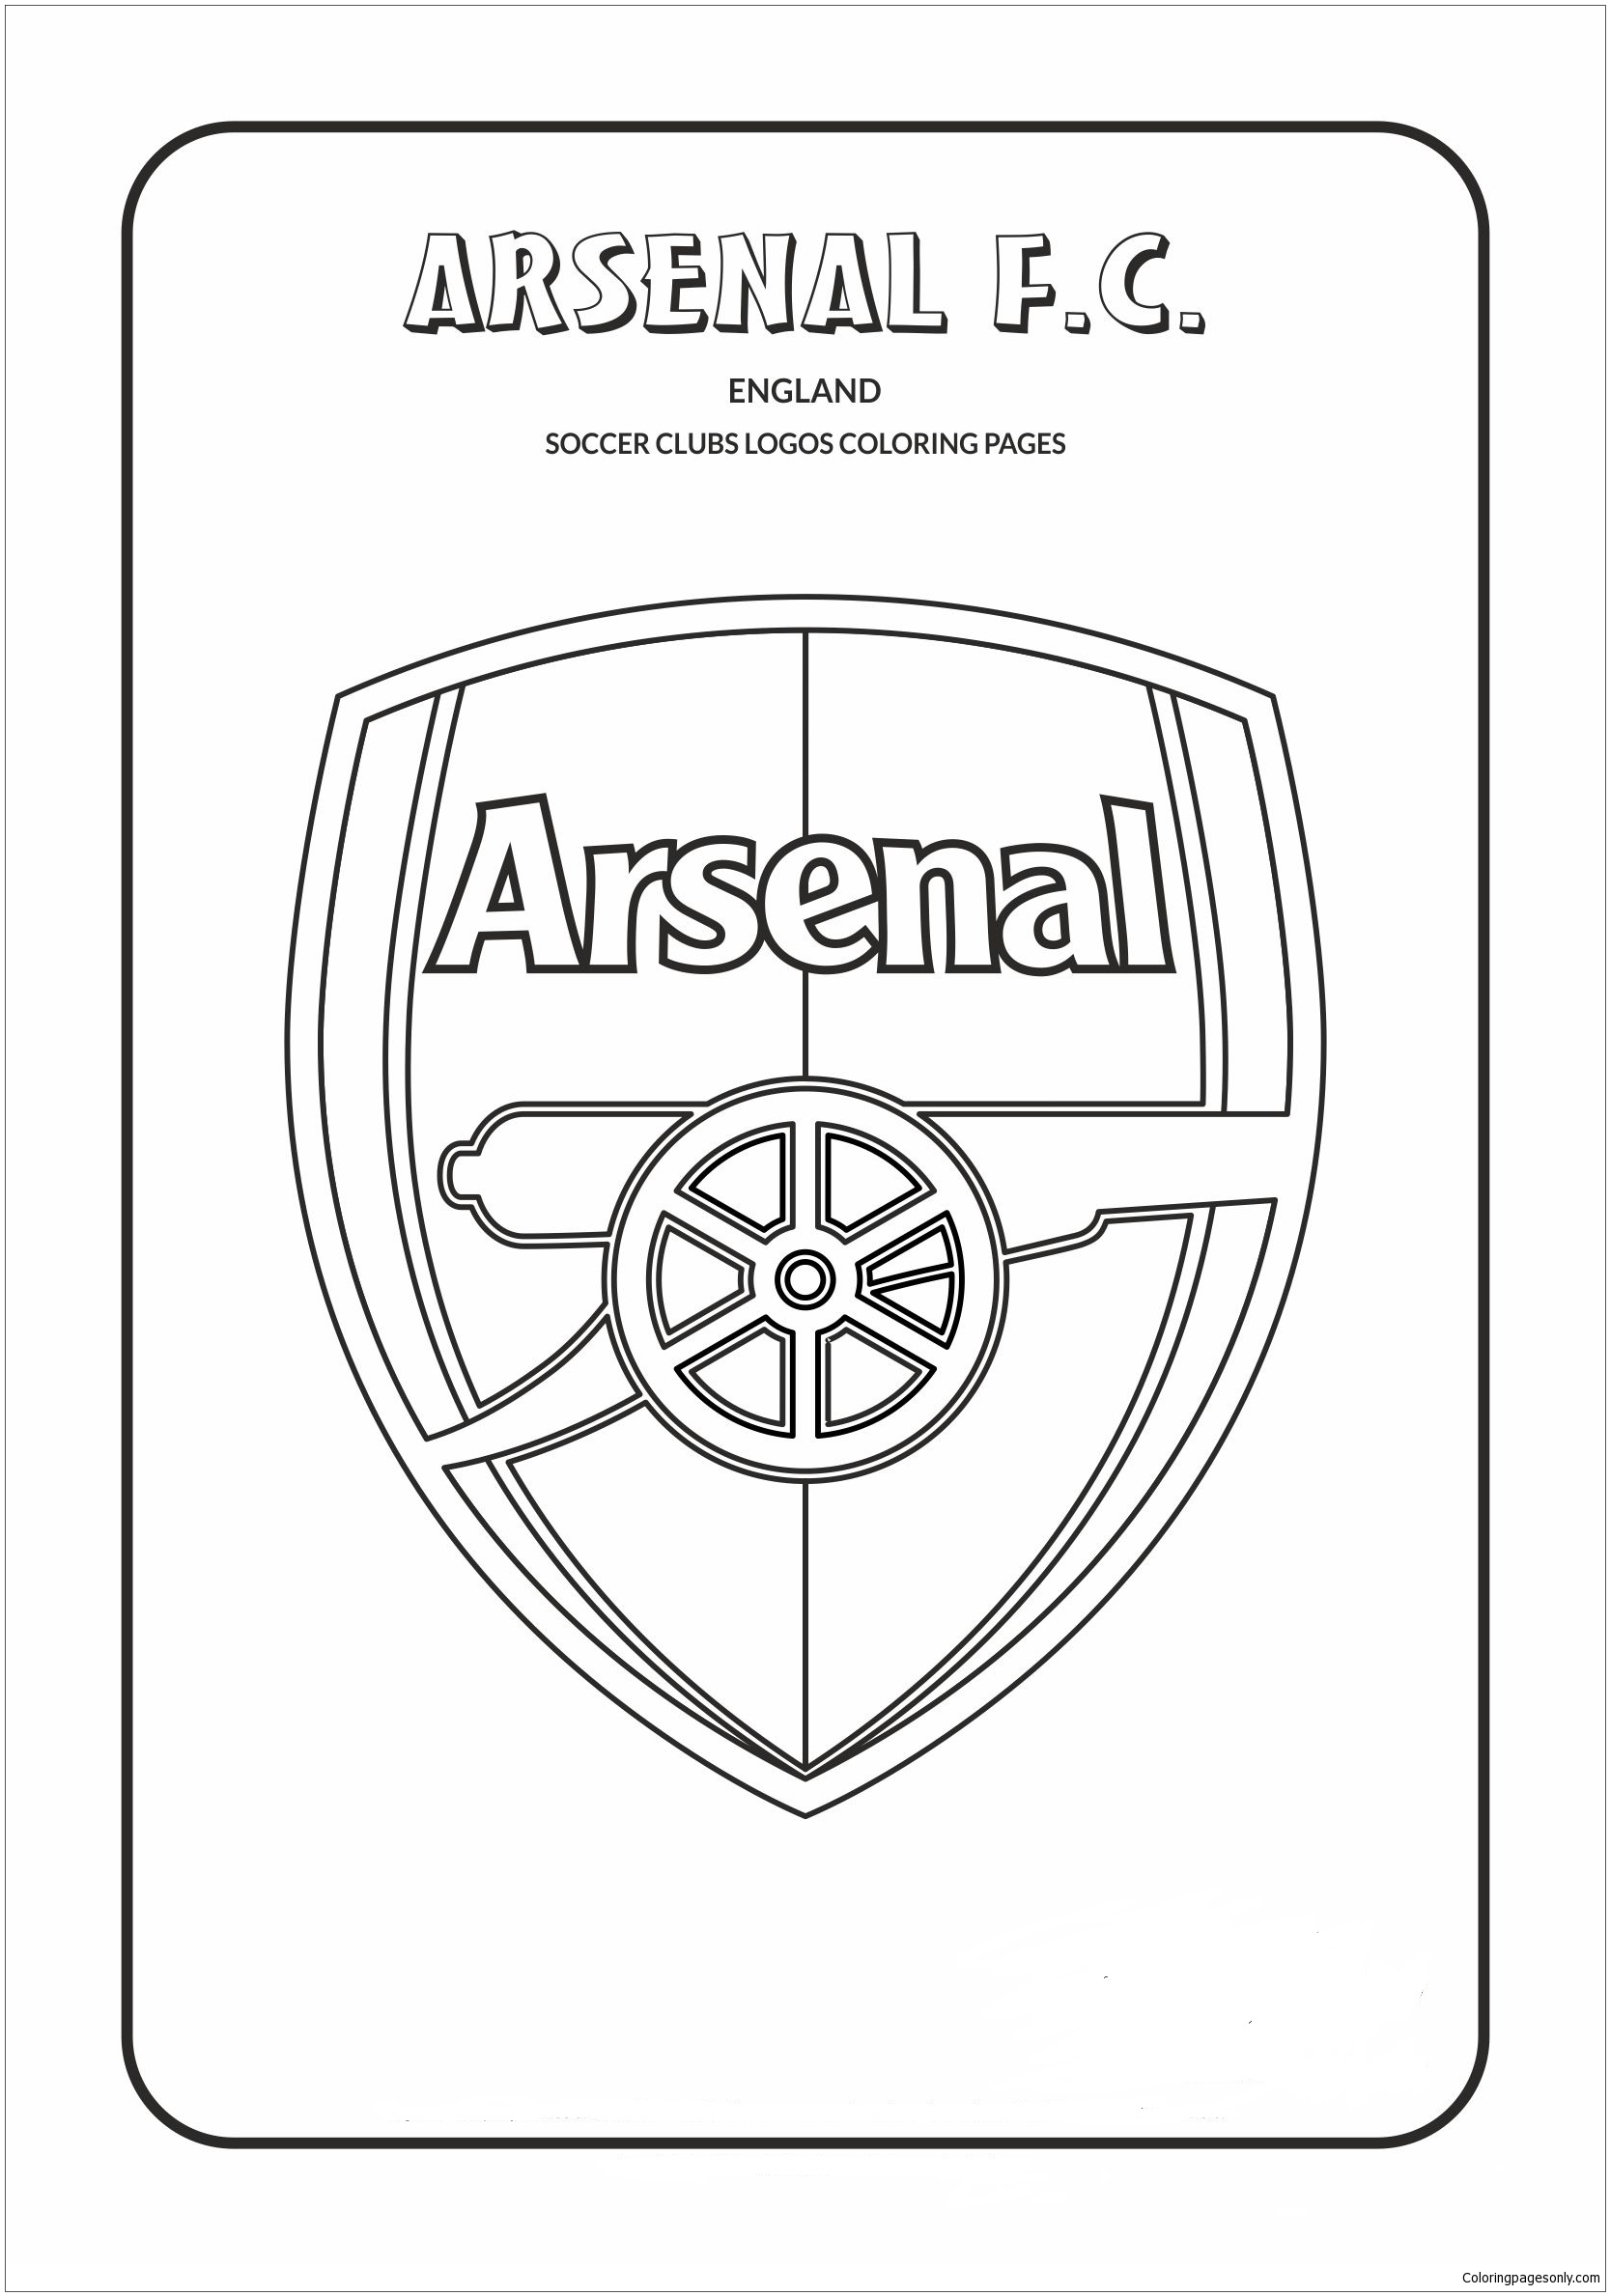 Arsenal F C Coloring Page Free Coloring Pages Online